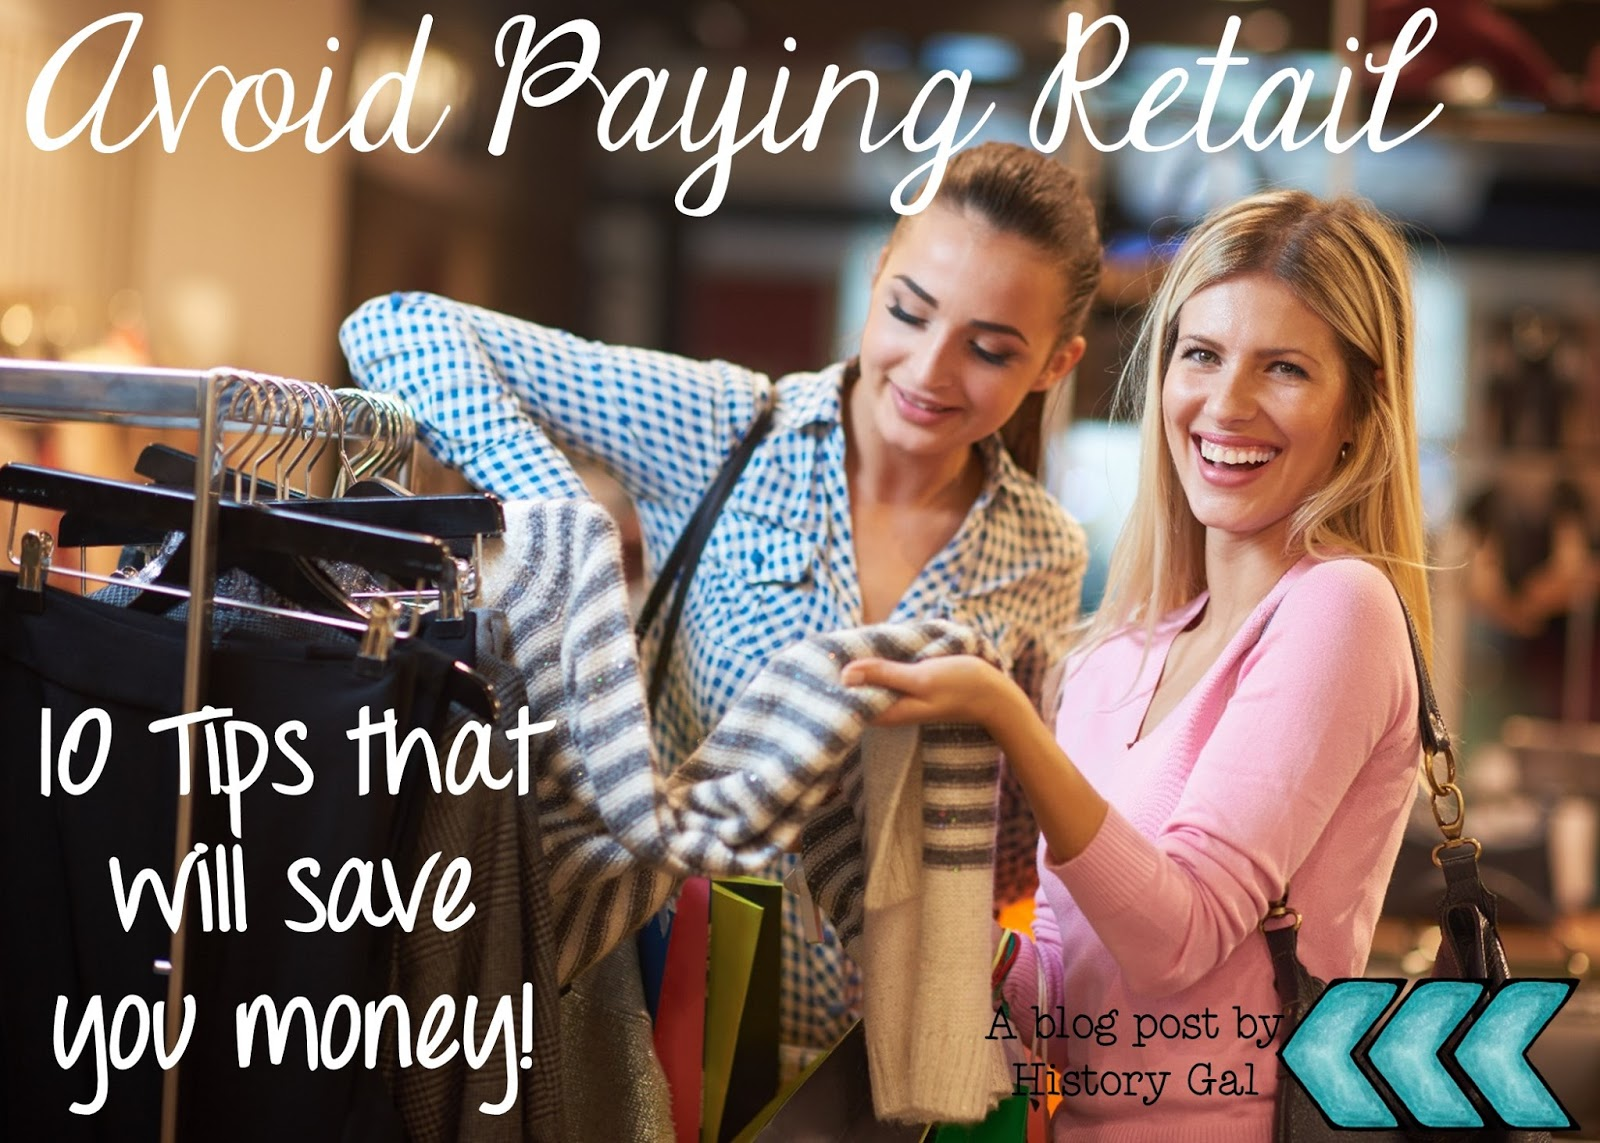 10 Tips to Avoid Paying Retail By History Gal